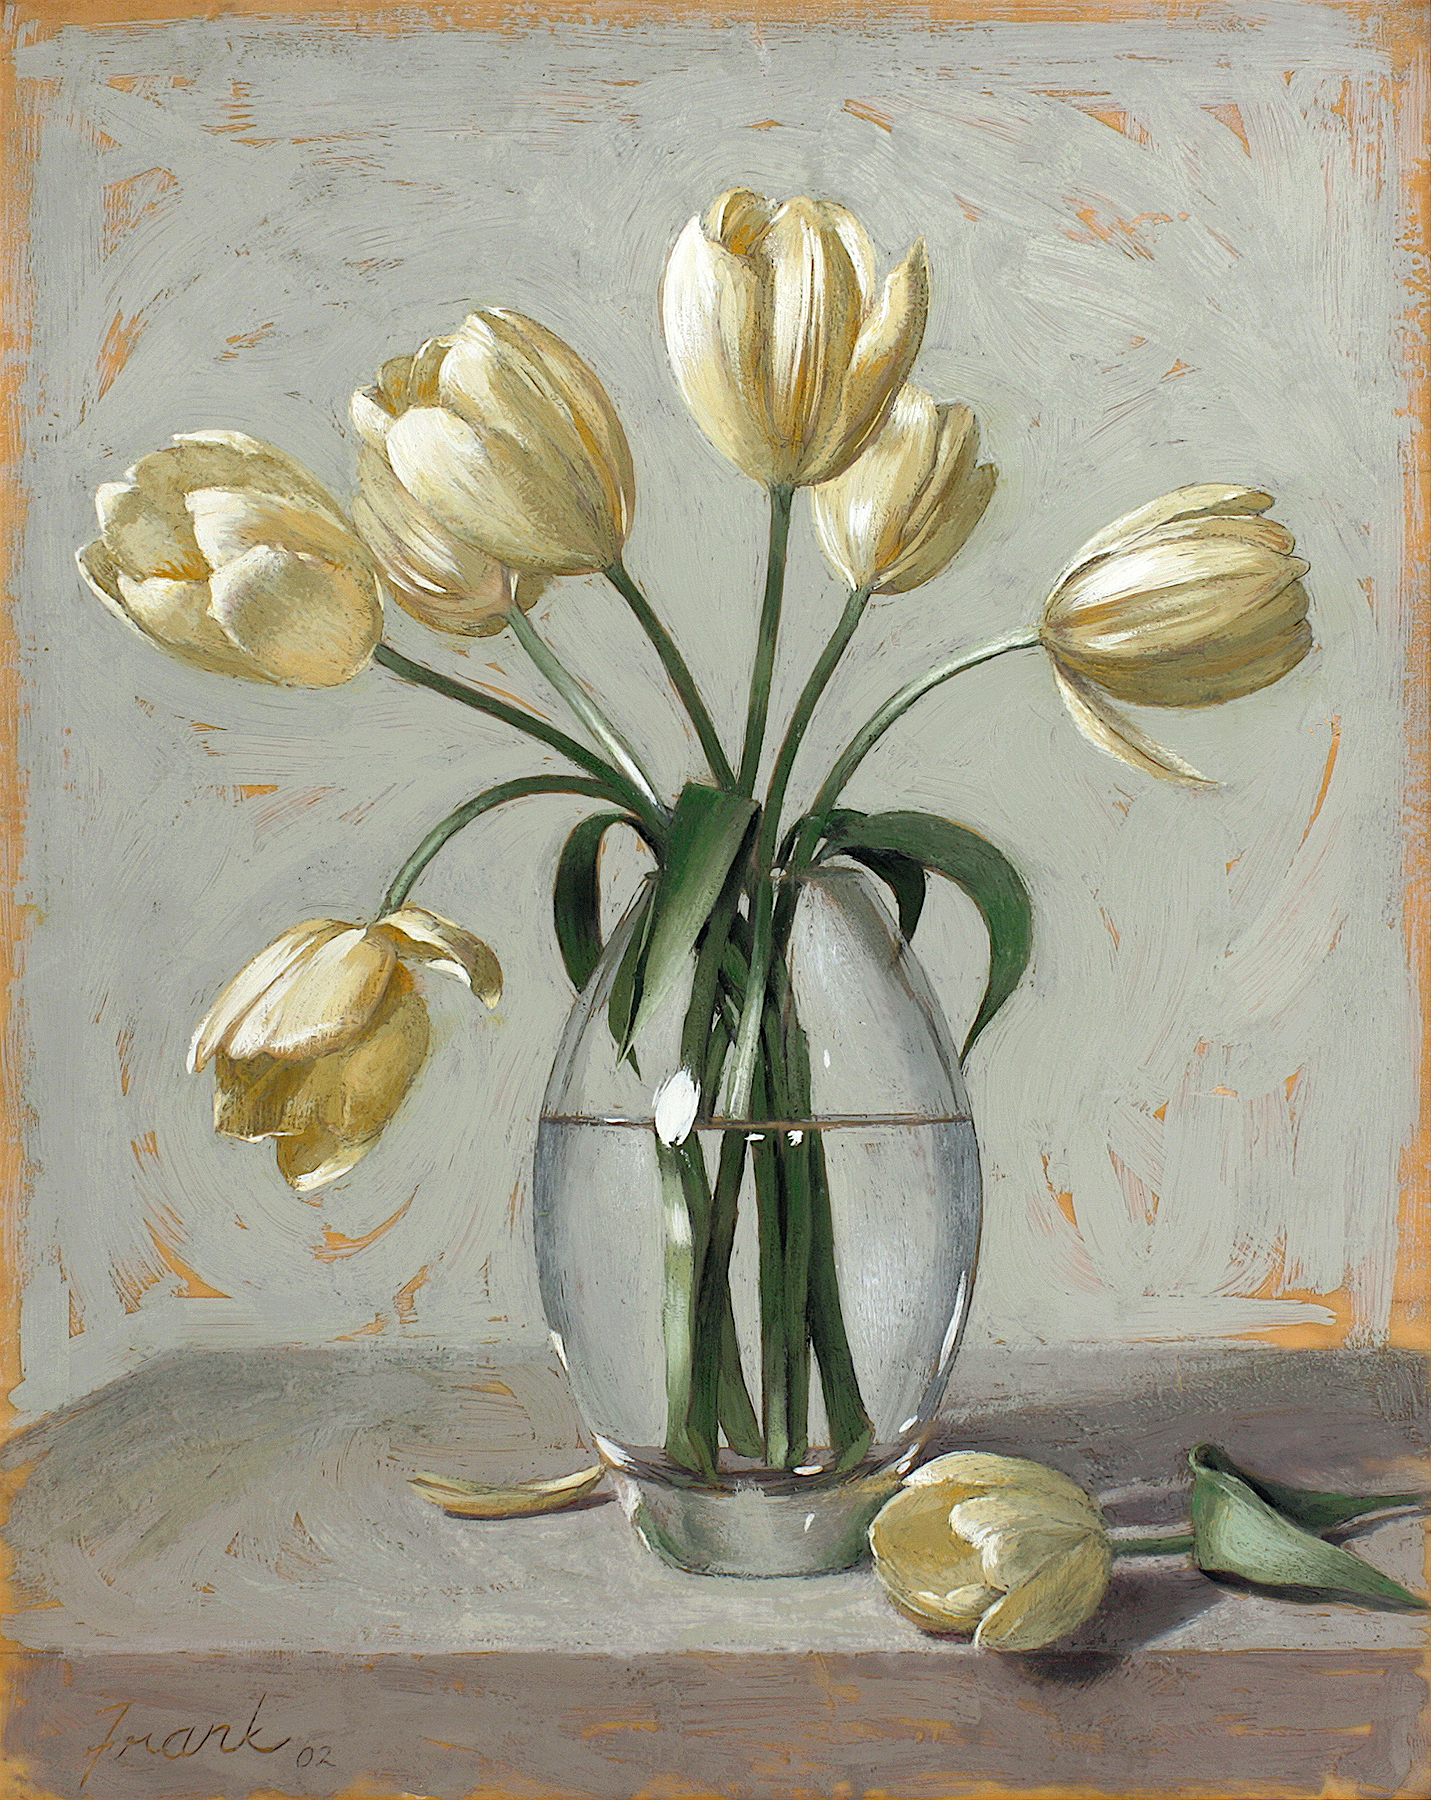 Yellow Tulips, encaustic beeswax on wood panel, 20%22x16%22 ©Kevin Frank.jpg